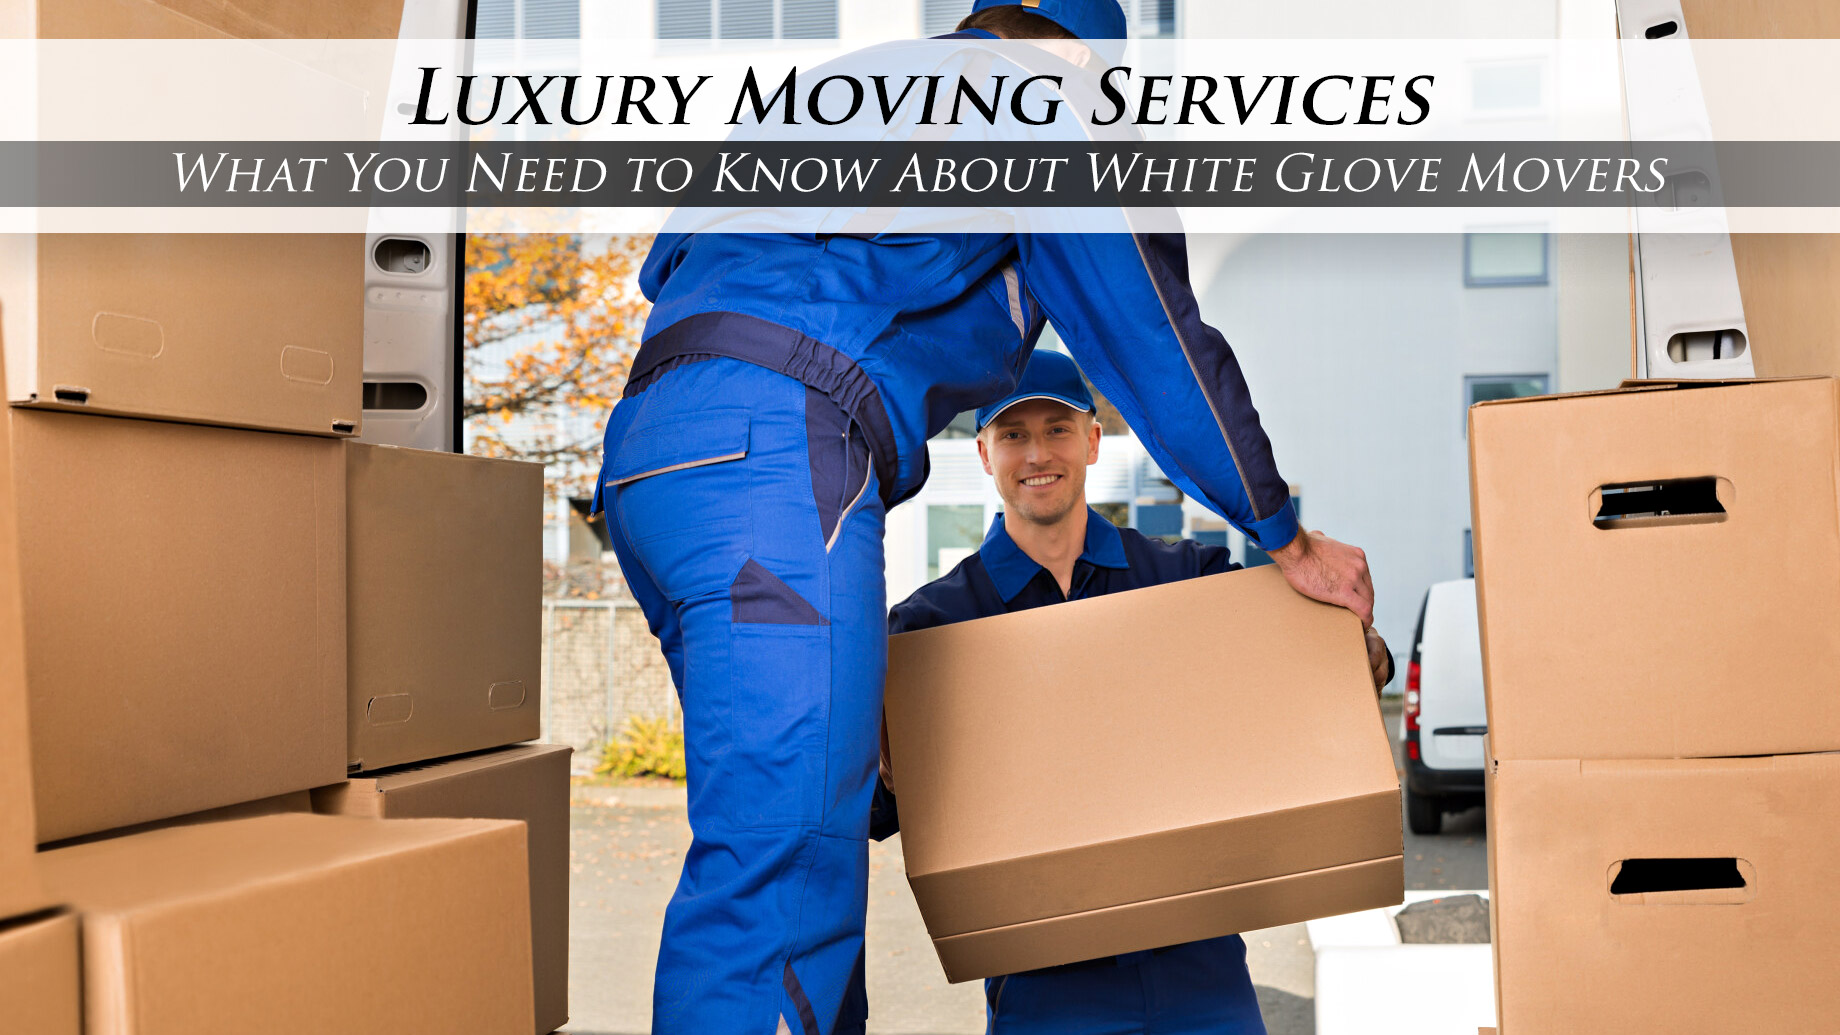 Luxury Moving Services - What You Need to Know About White Glove Movers